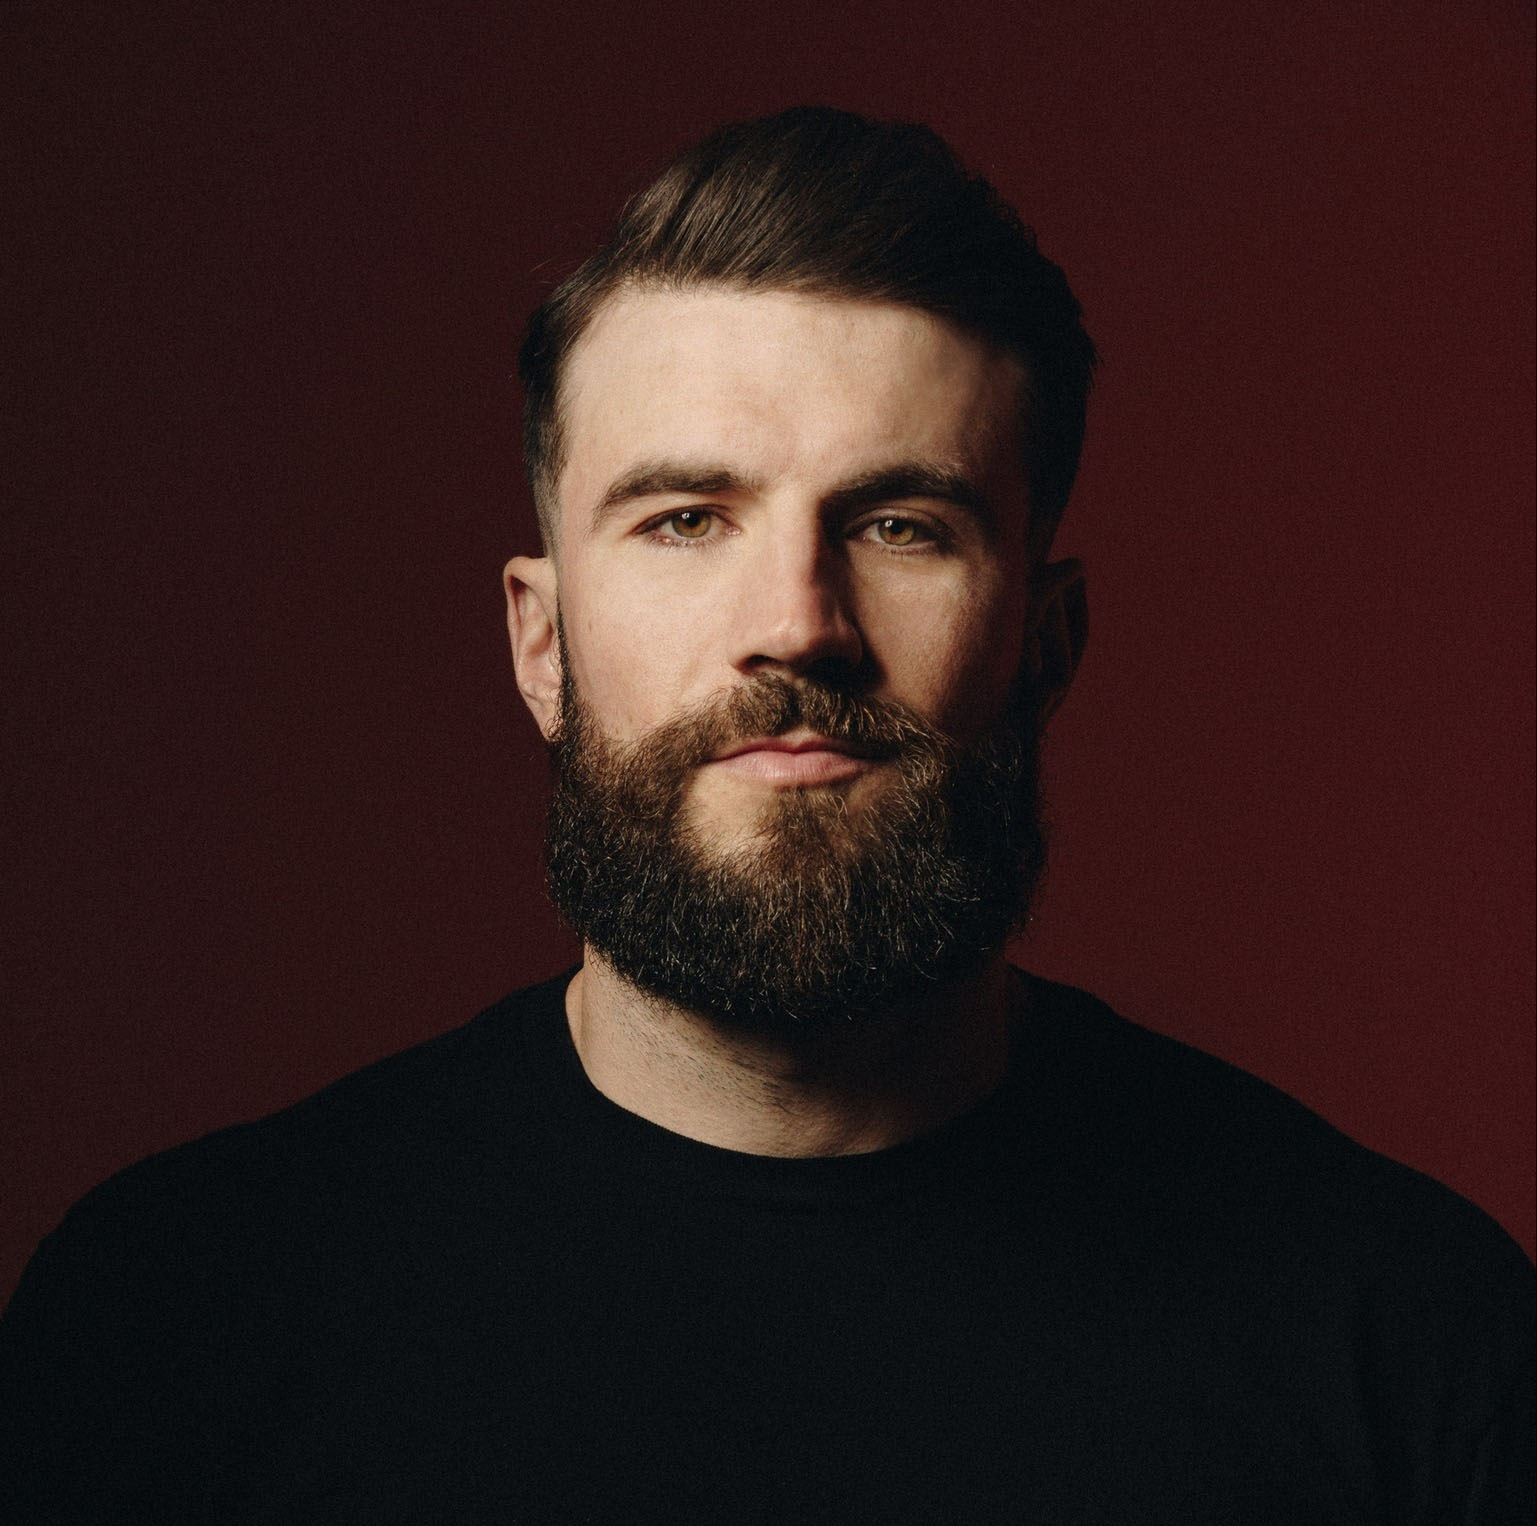 SAM HUNT HUMBLED BY REACTION TO 'BODY LIKE A BACK ROAD.'